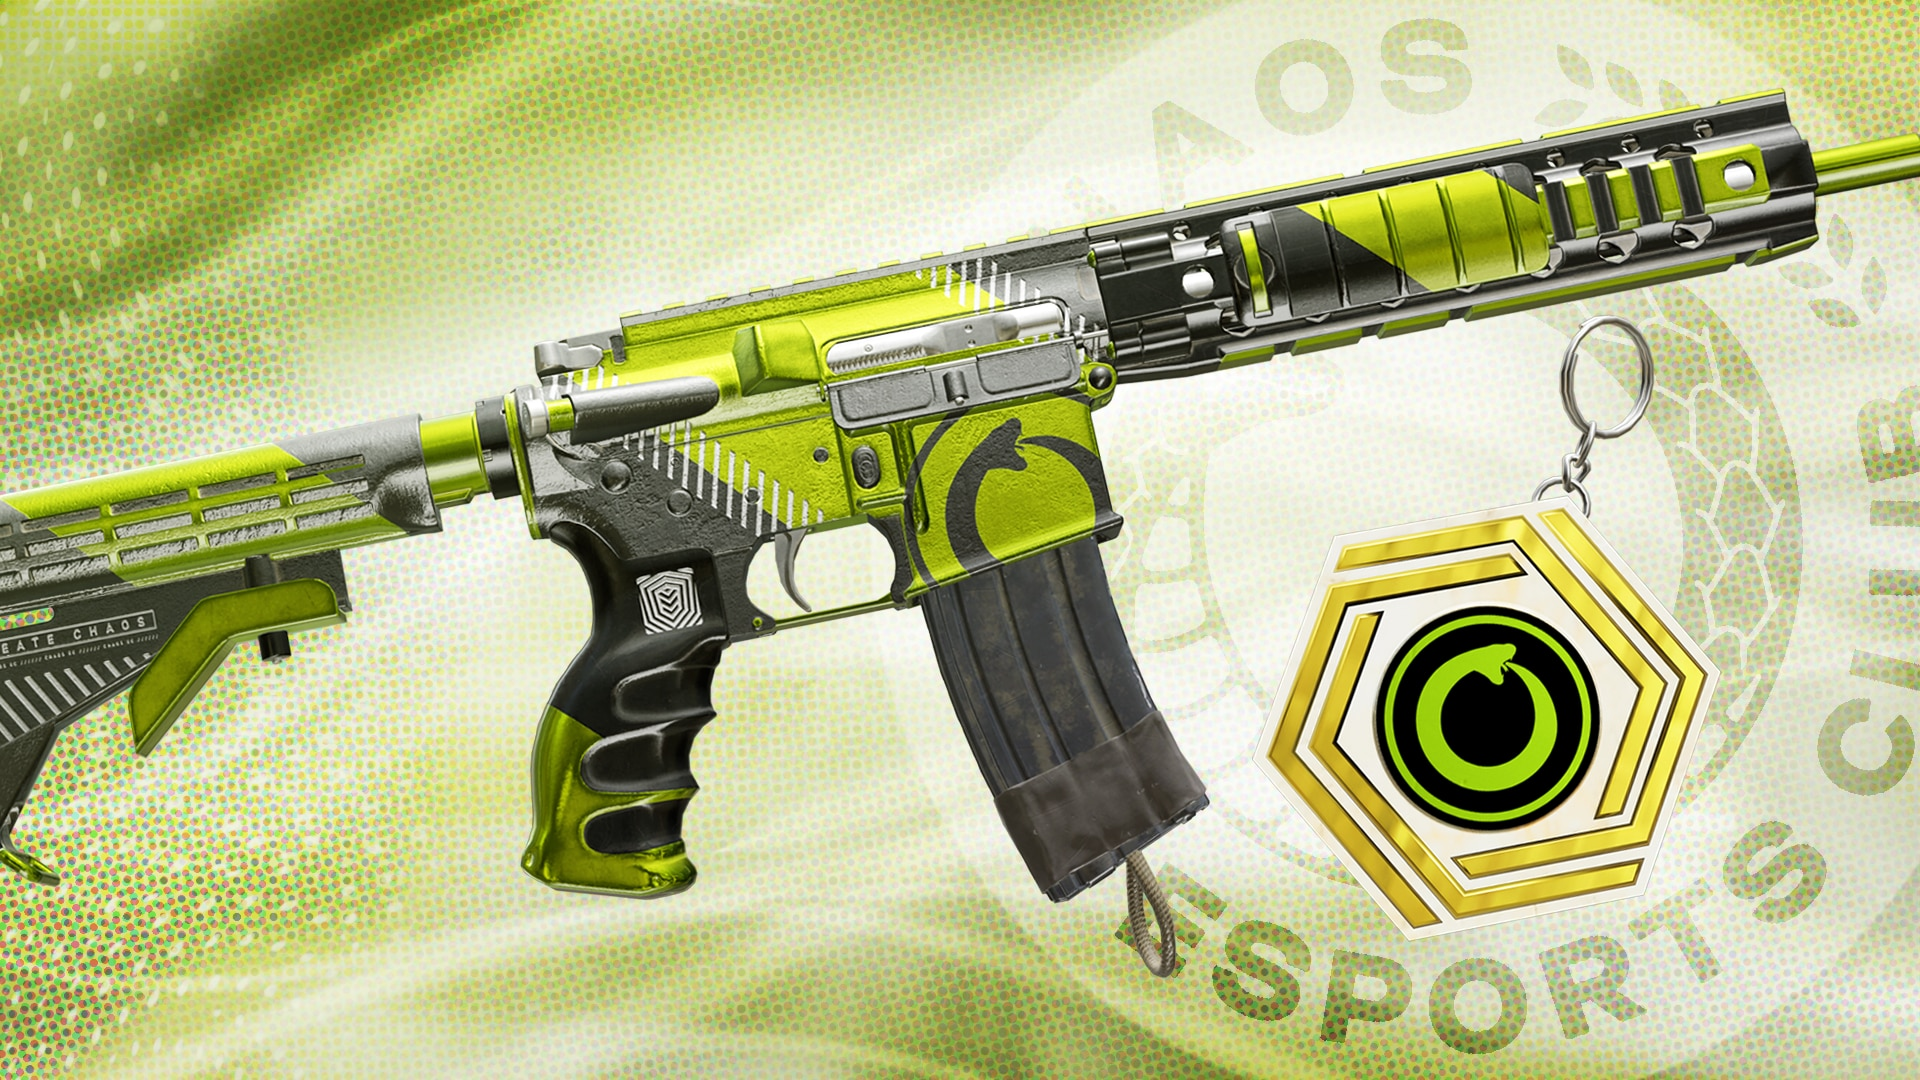 Y6S2 Proteam Chaos weaponkit 1920x1080